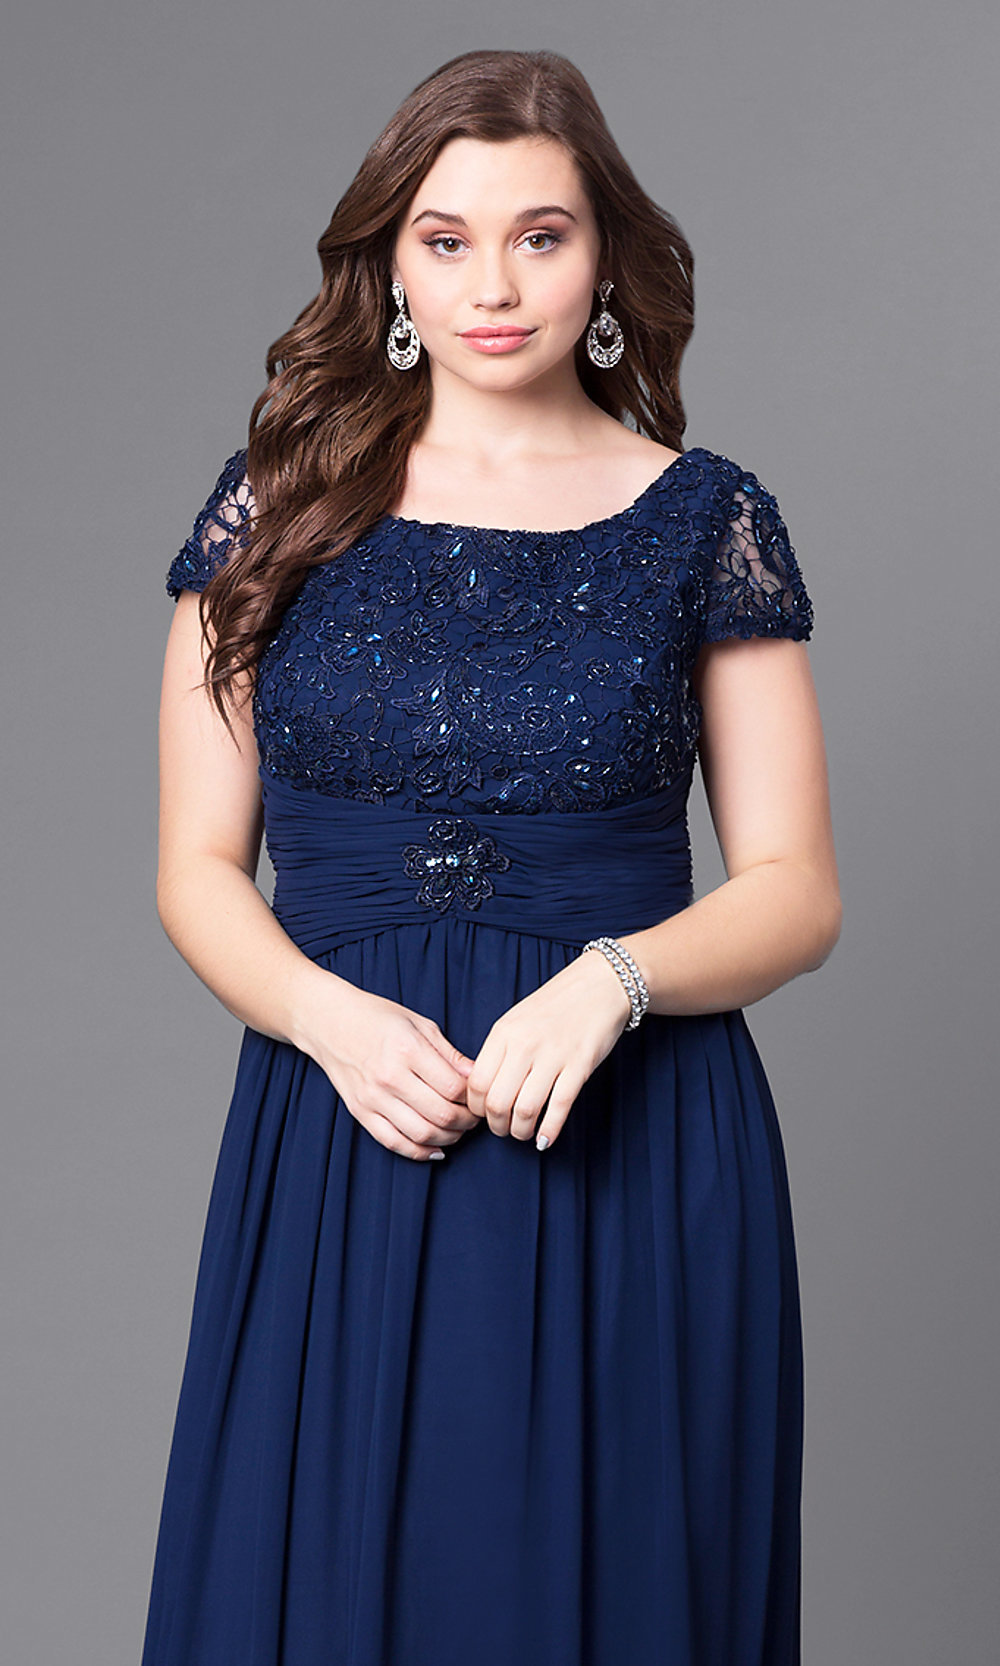 Plus Size Formal Cocktail Dresses